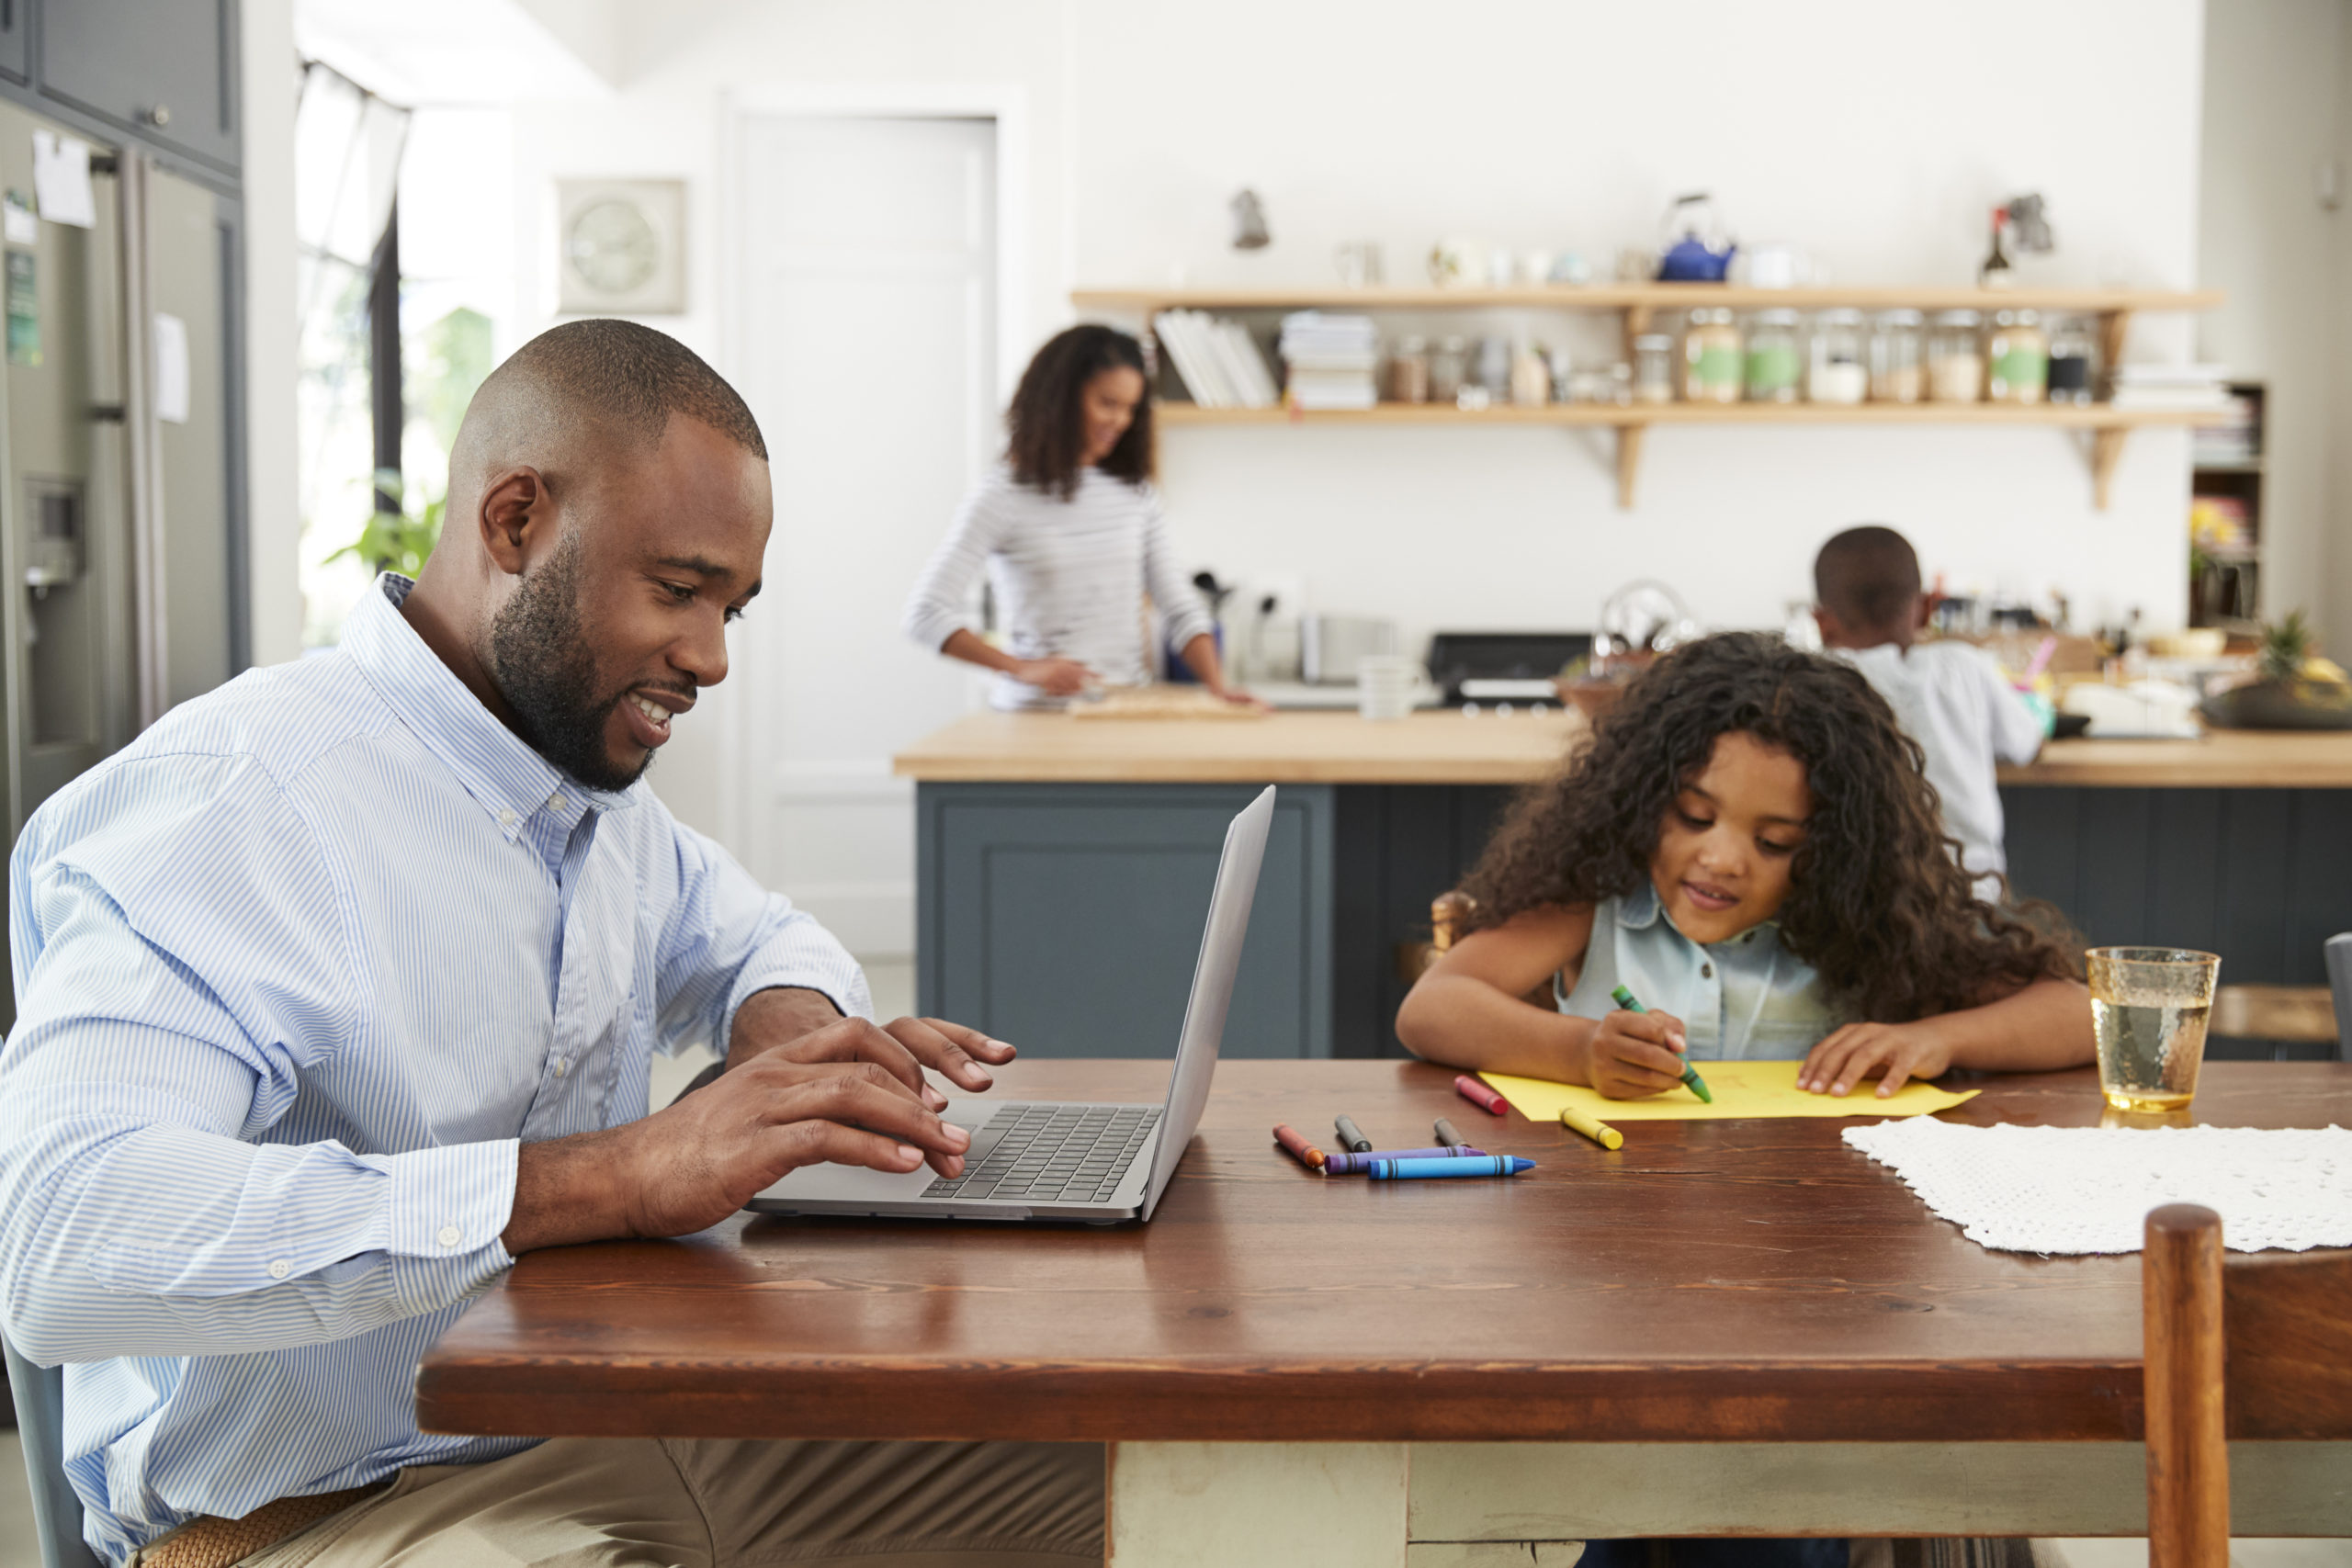 Man working at laptop with family in kitchen